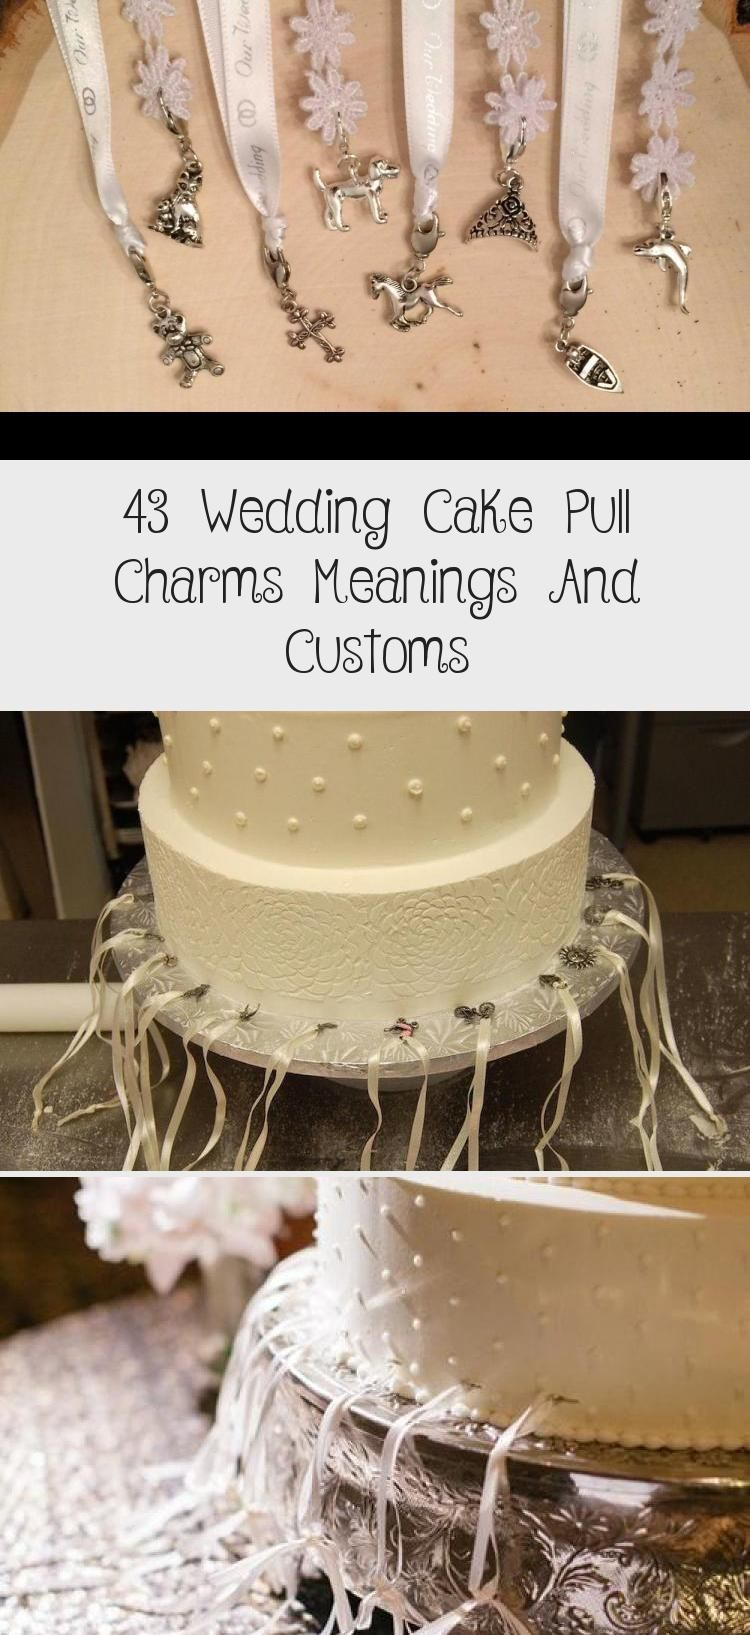 43 Wedding Cake Pull Charms Meanings And Customs Cake In 2020 Wedding Cake Pull Charms Cake Pull Charms Wedding Cake Pulls